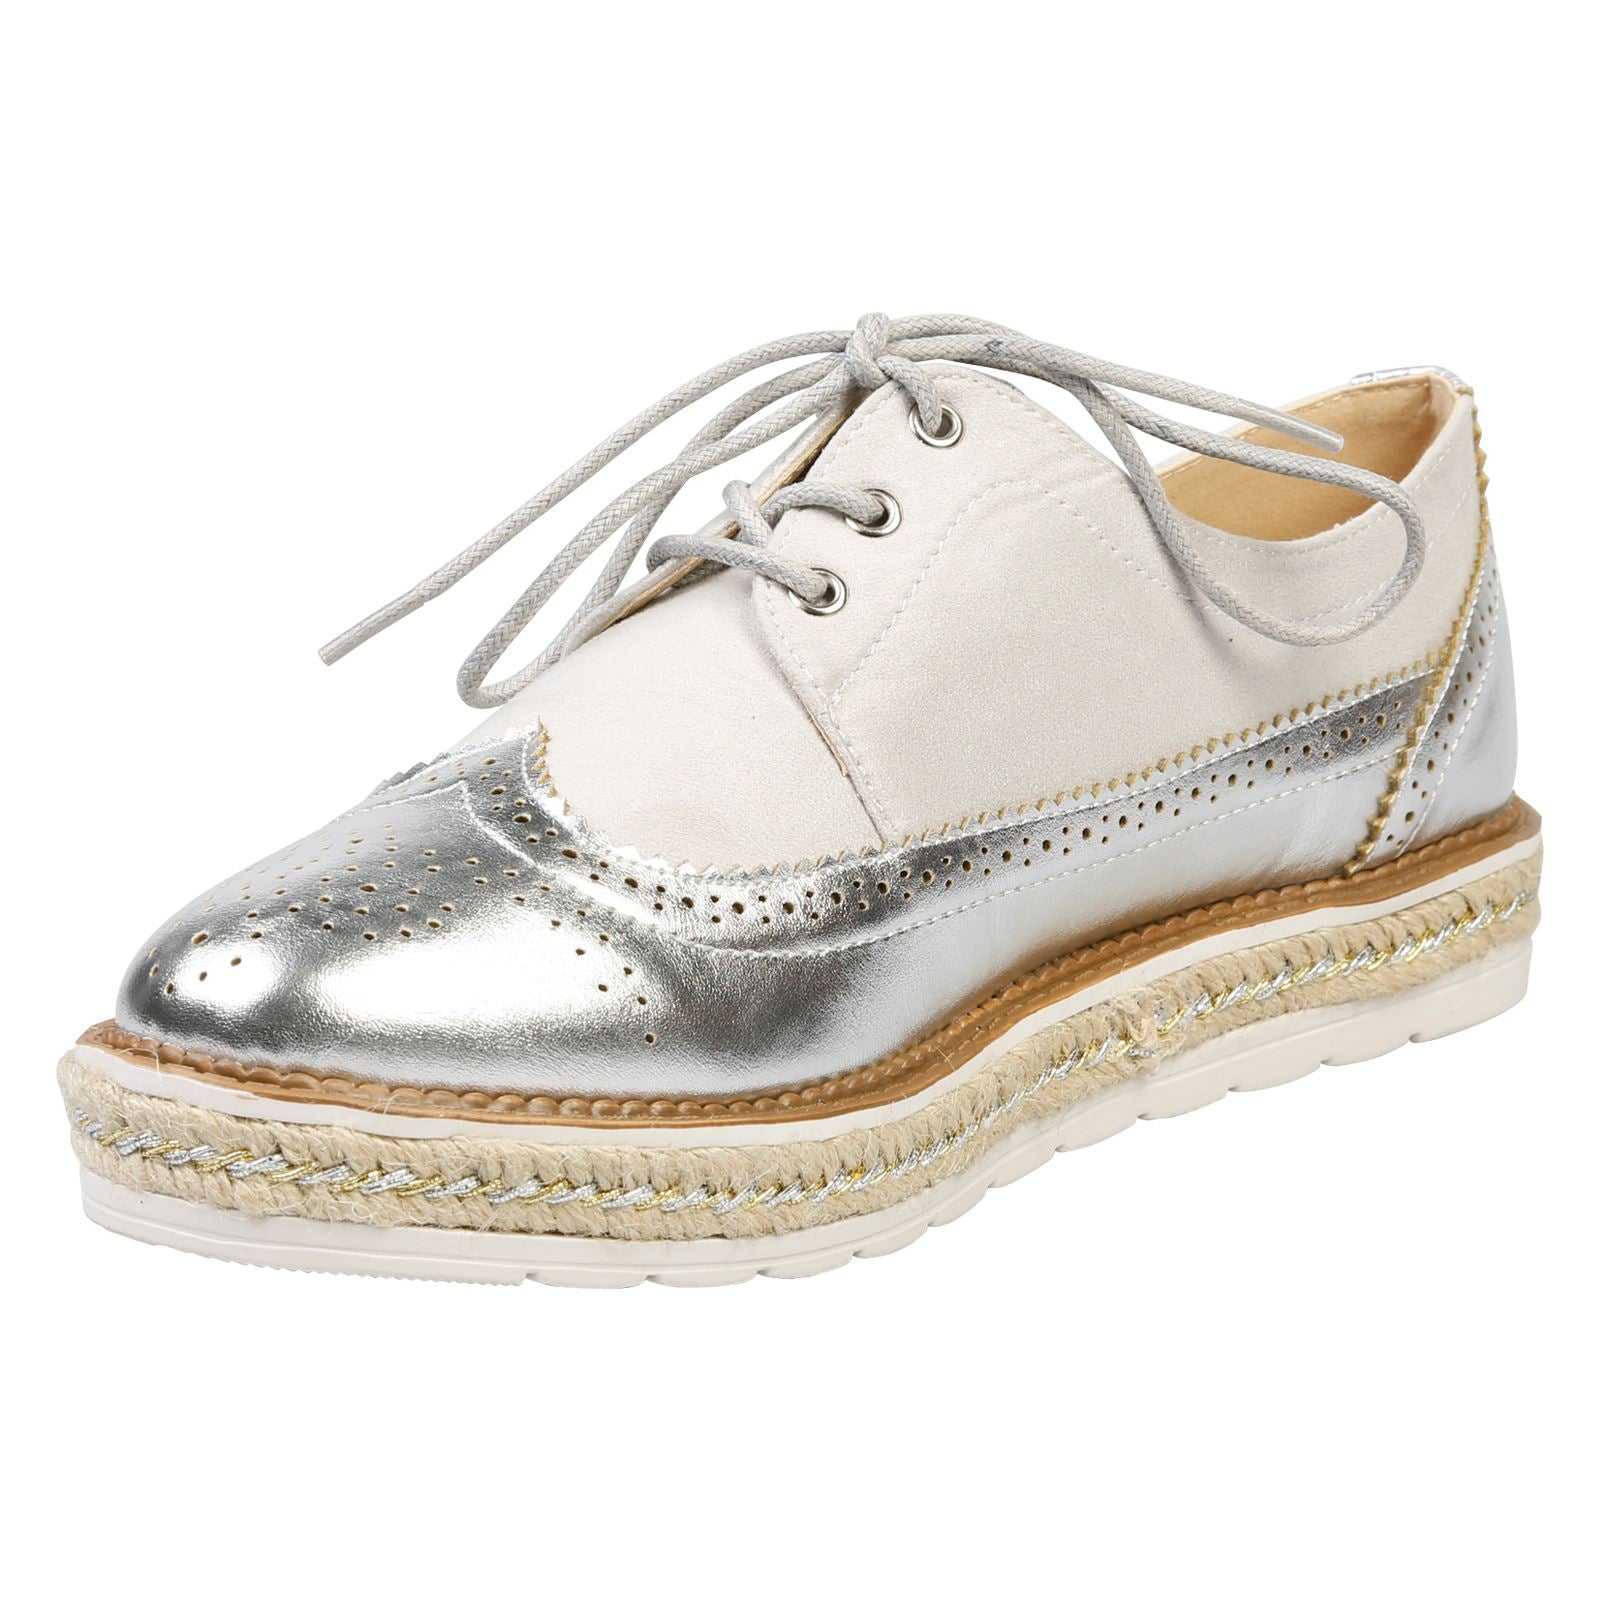 Regina Two Tone Flatform Brogues in Silver & Grey